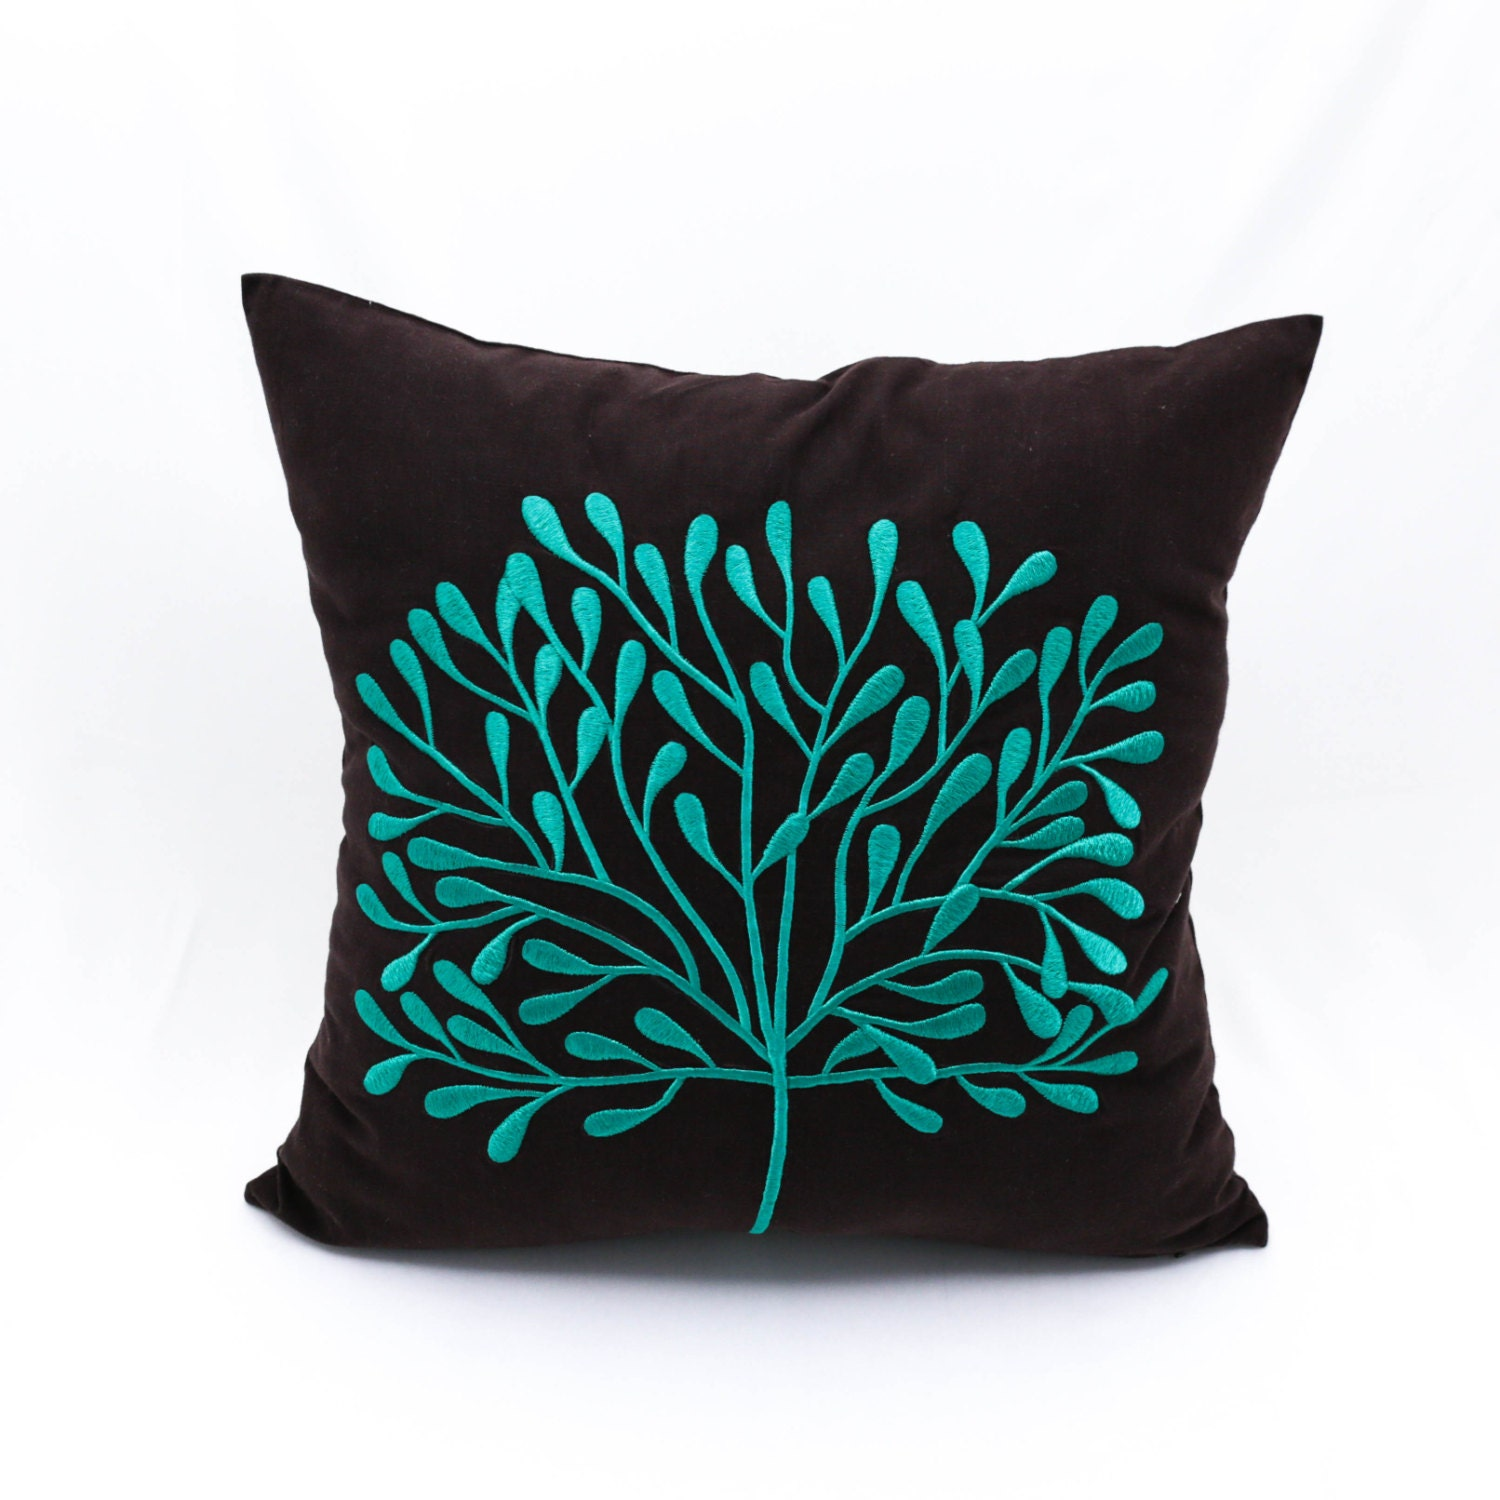 Dark Brown Throw Pillow : Teal Decorative Pillow Cover Home decor Dark Brown Linen